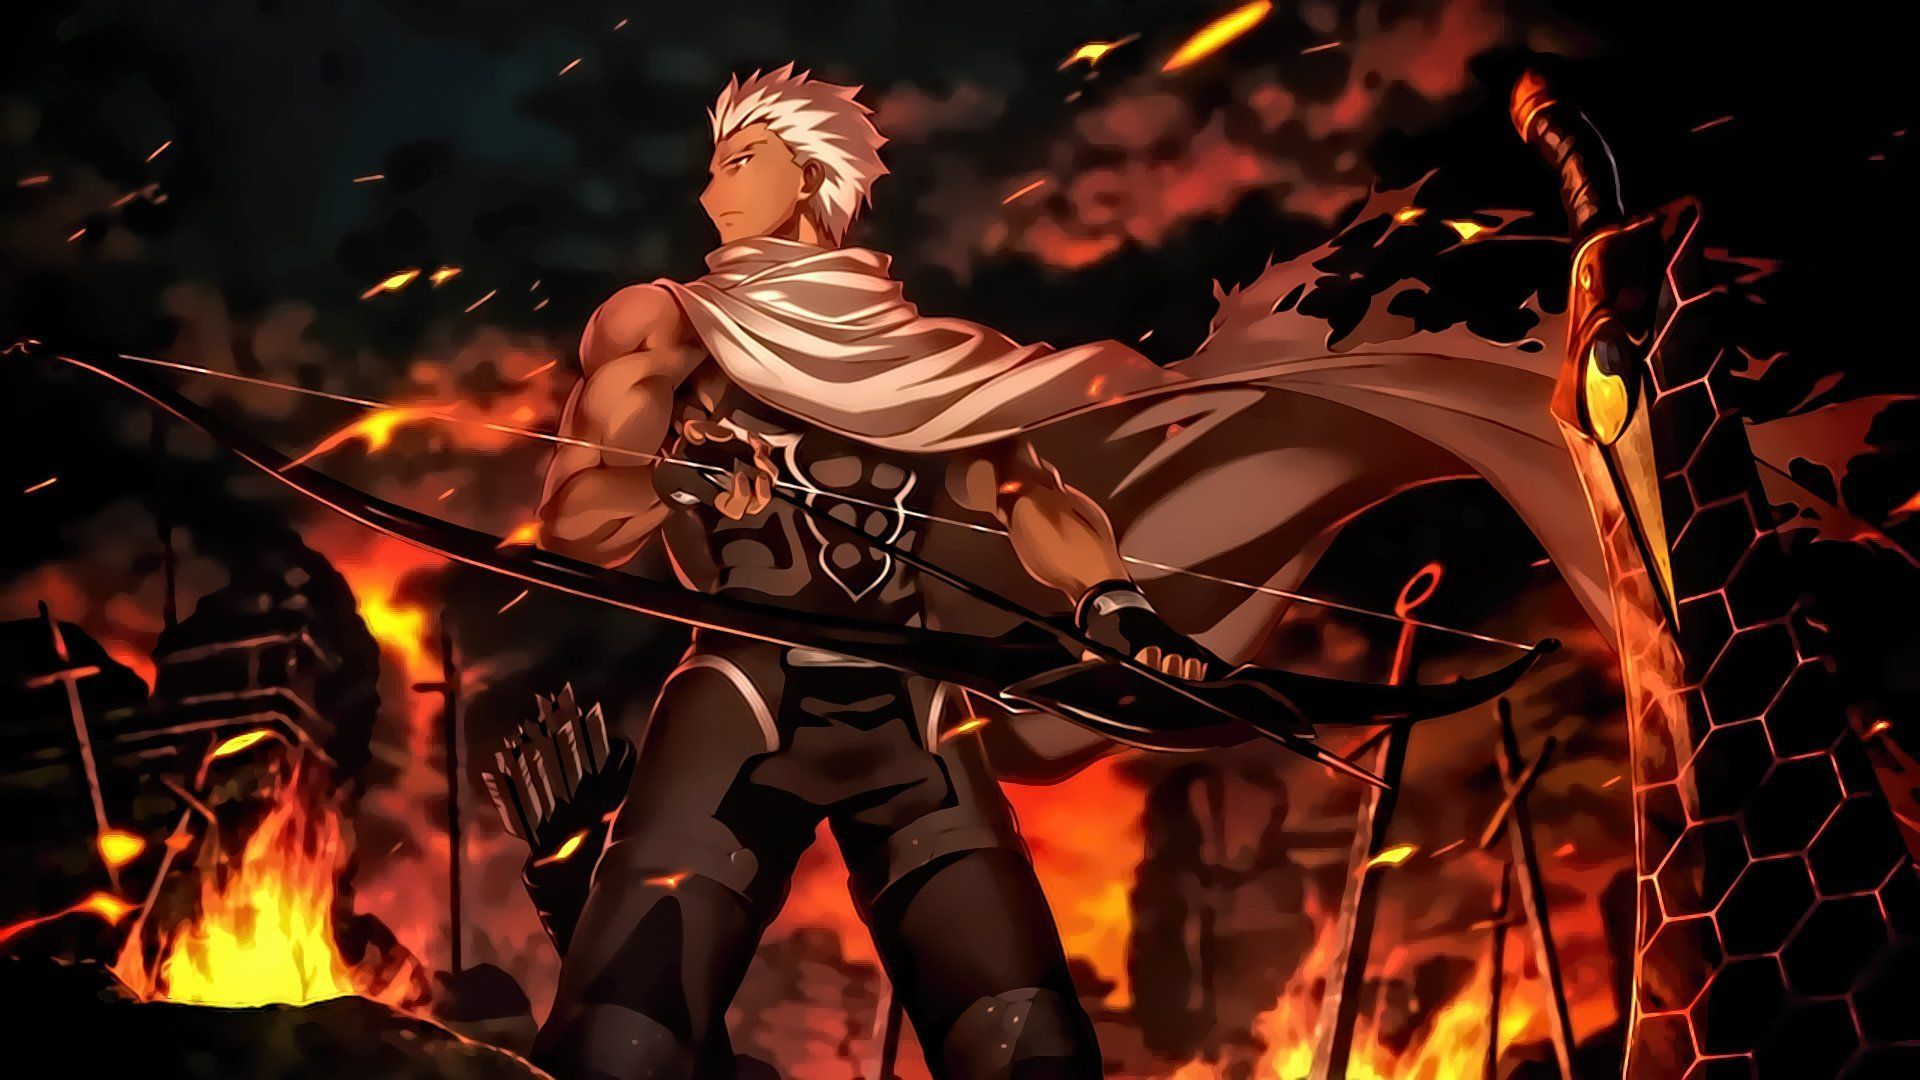 Fate Stay Night Wallpapers   Top Fate Stay Night Backgrounds 1920x1080